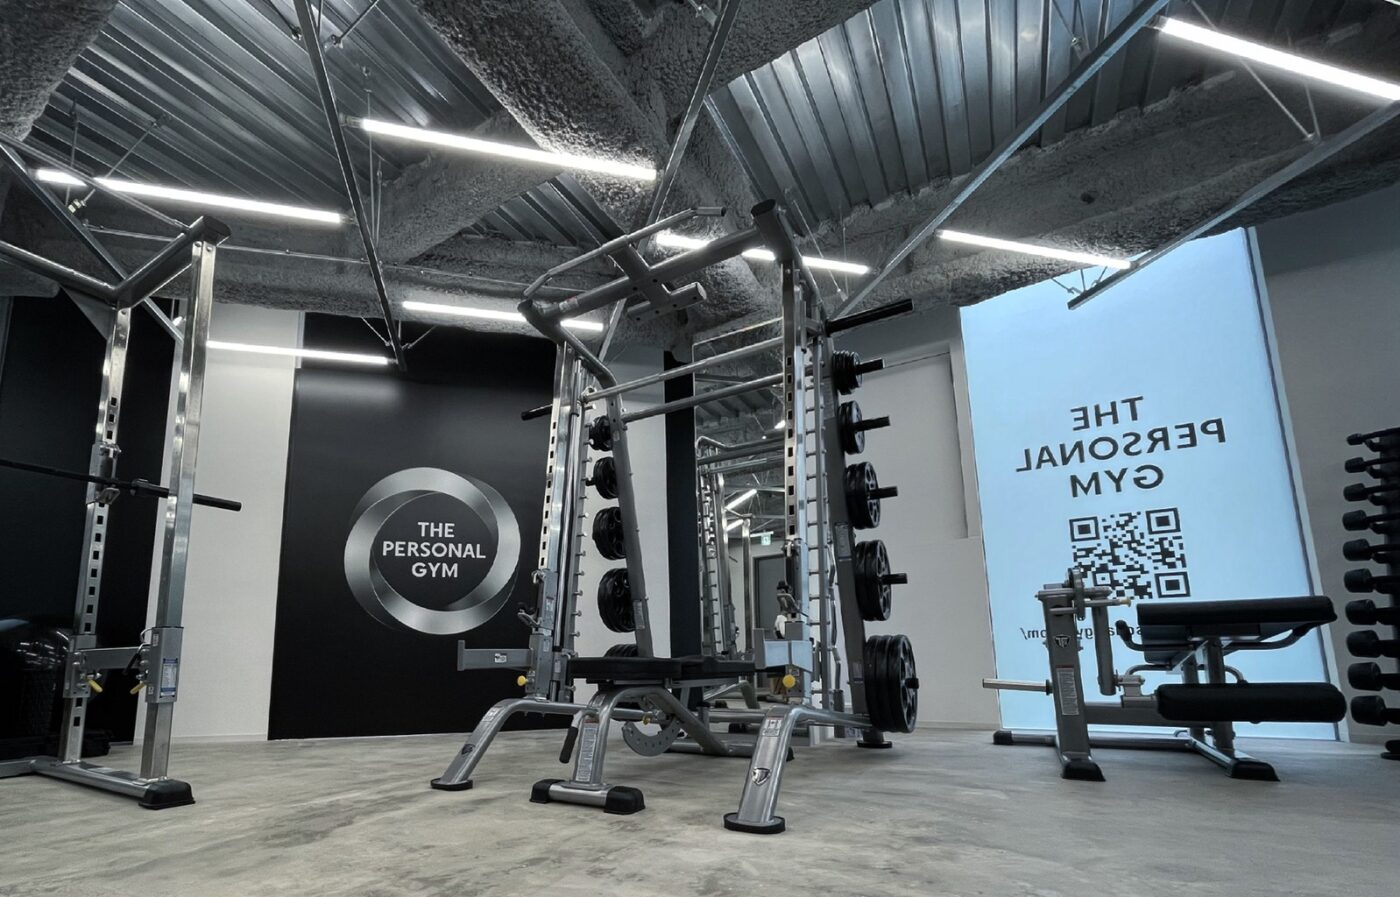 THE PERSONAL GYM 新宿御苑店